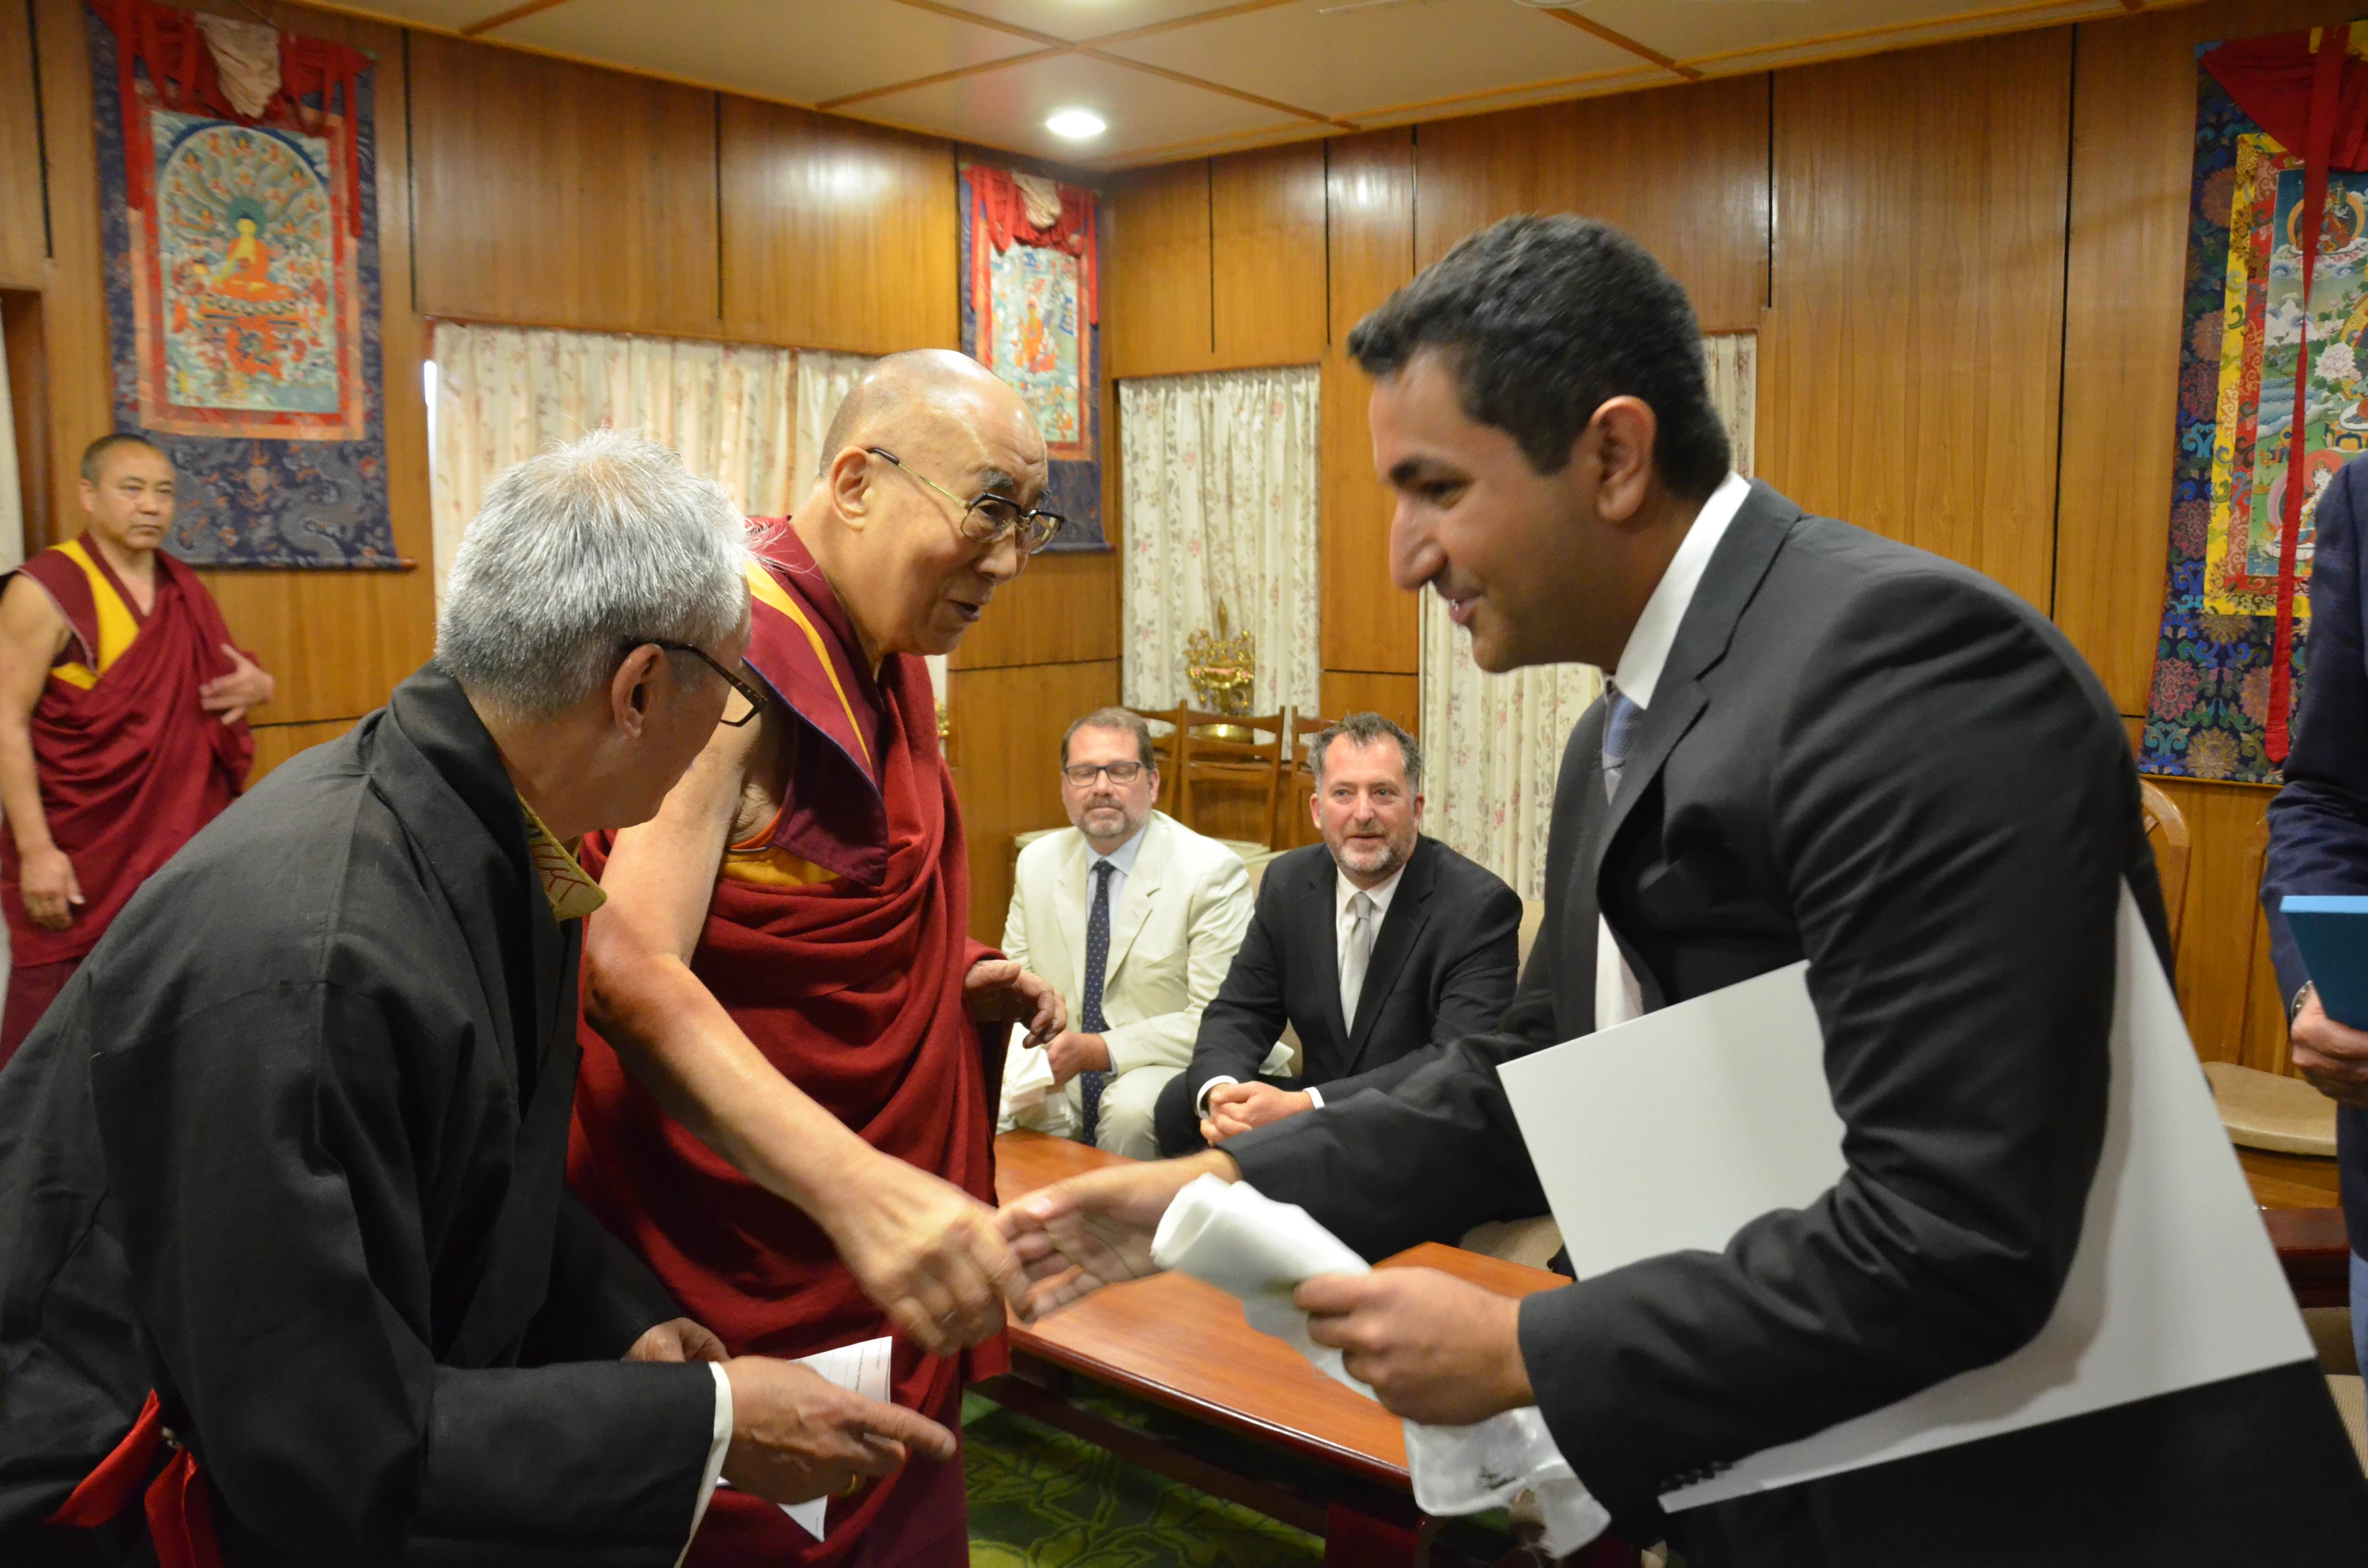 Habib shaking HHDL hands